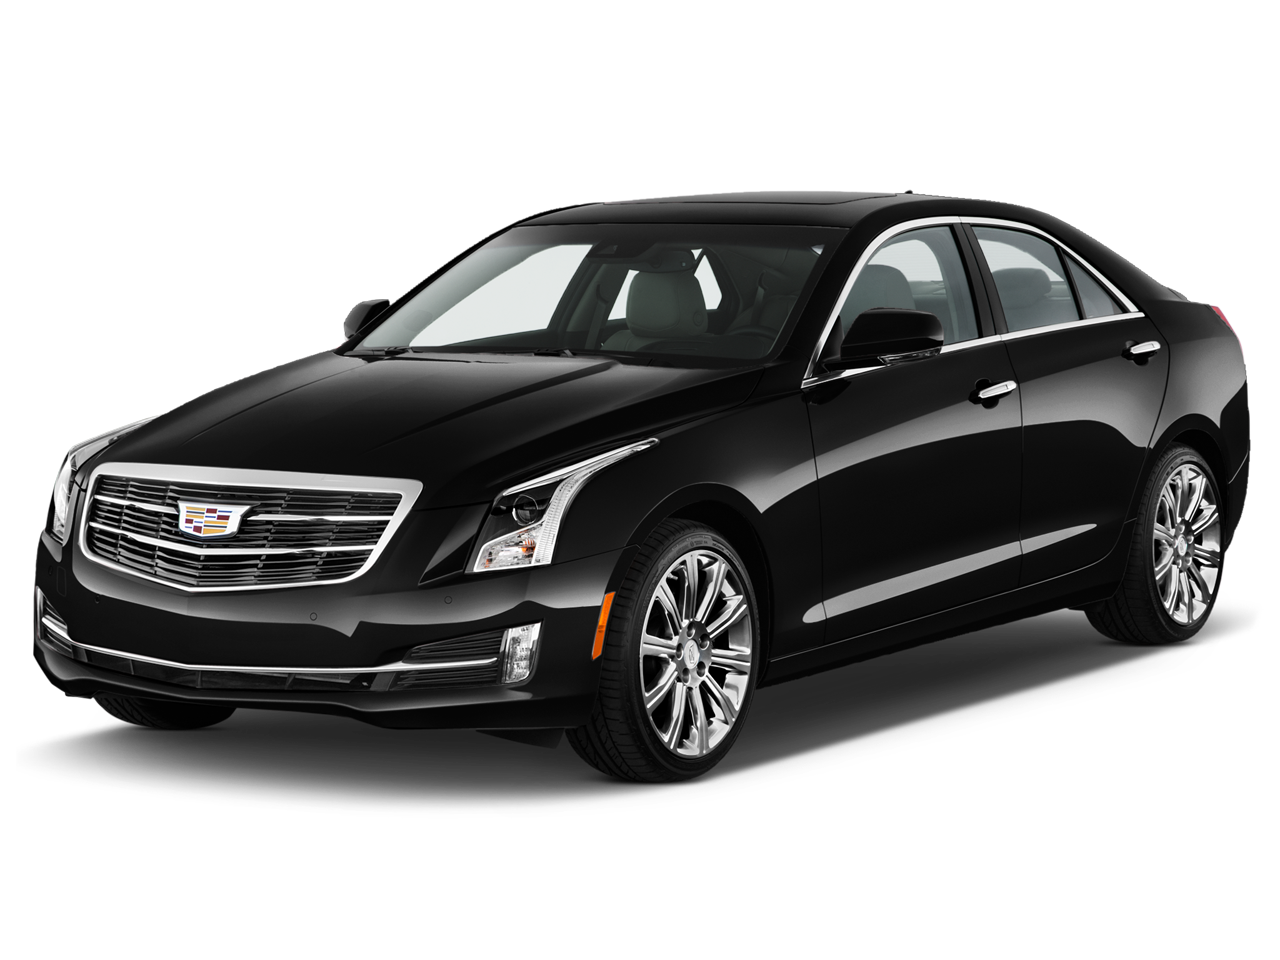 new 2017 cadillac ats 2 0l turbo luxury near highland mi family deal. Black Bedroom Furniture Sets. Home Design Ideas